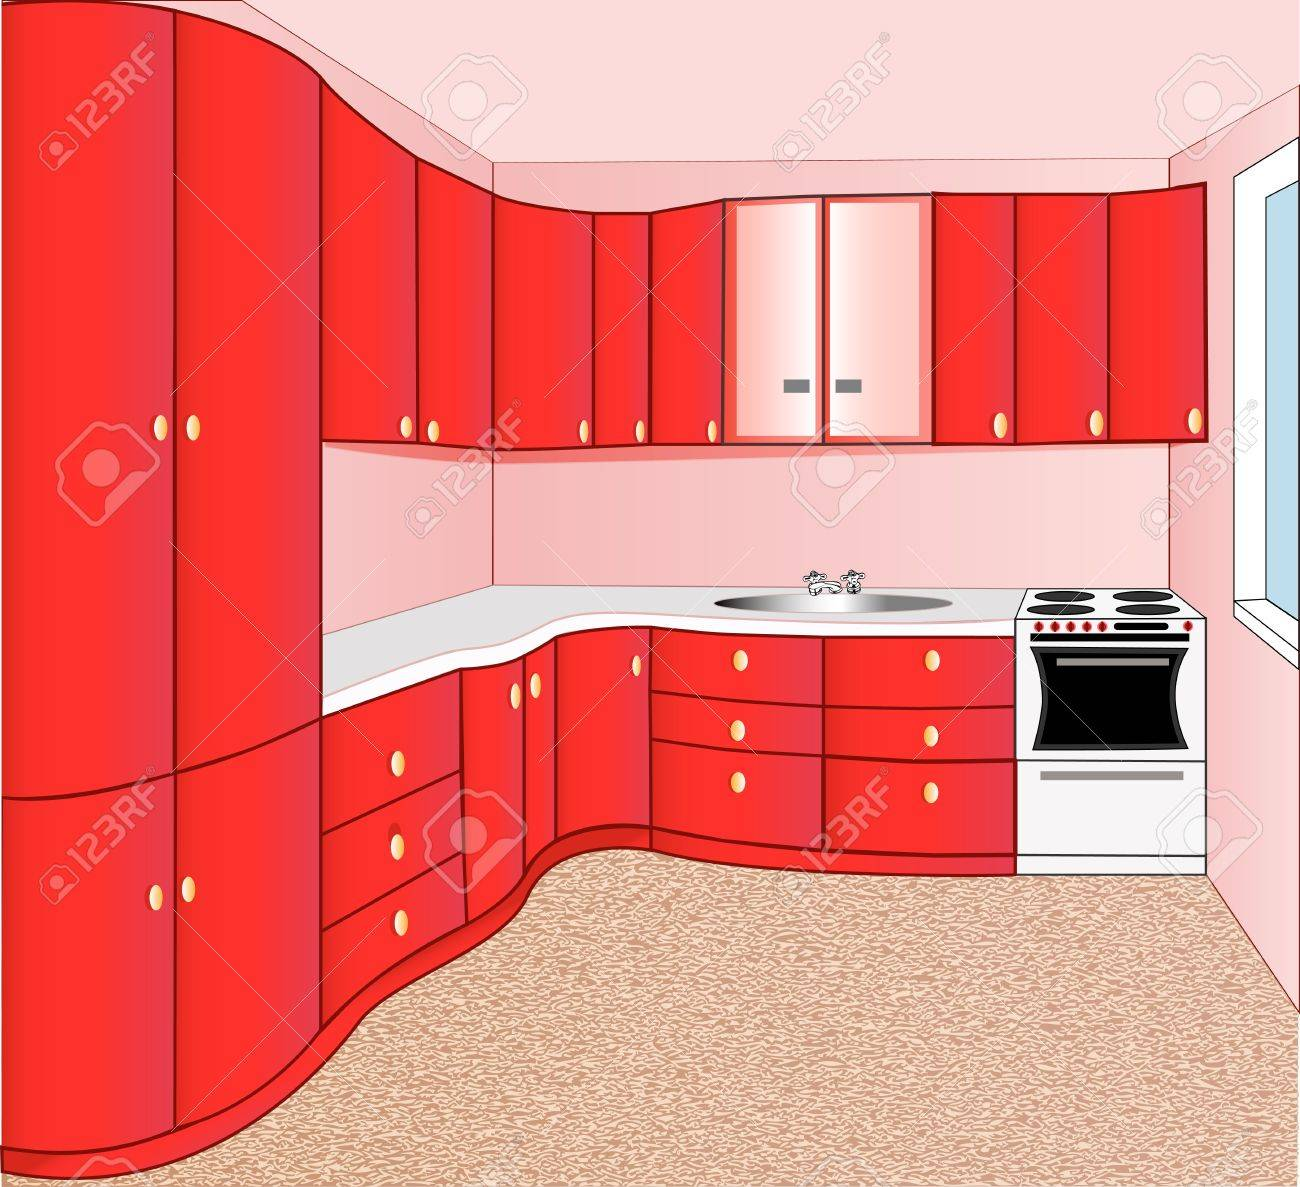 illustration of the interior of the kitchen red Stock Vector - 18552733